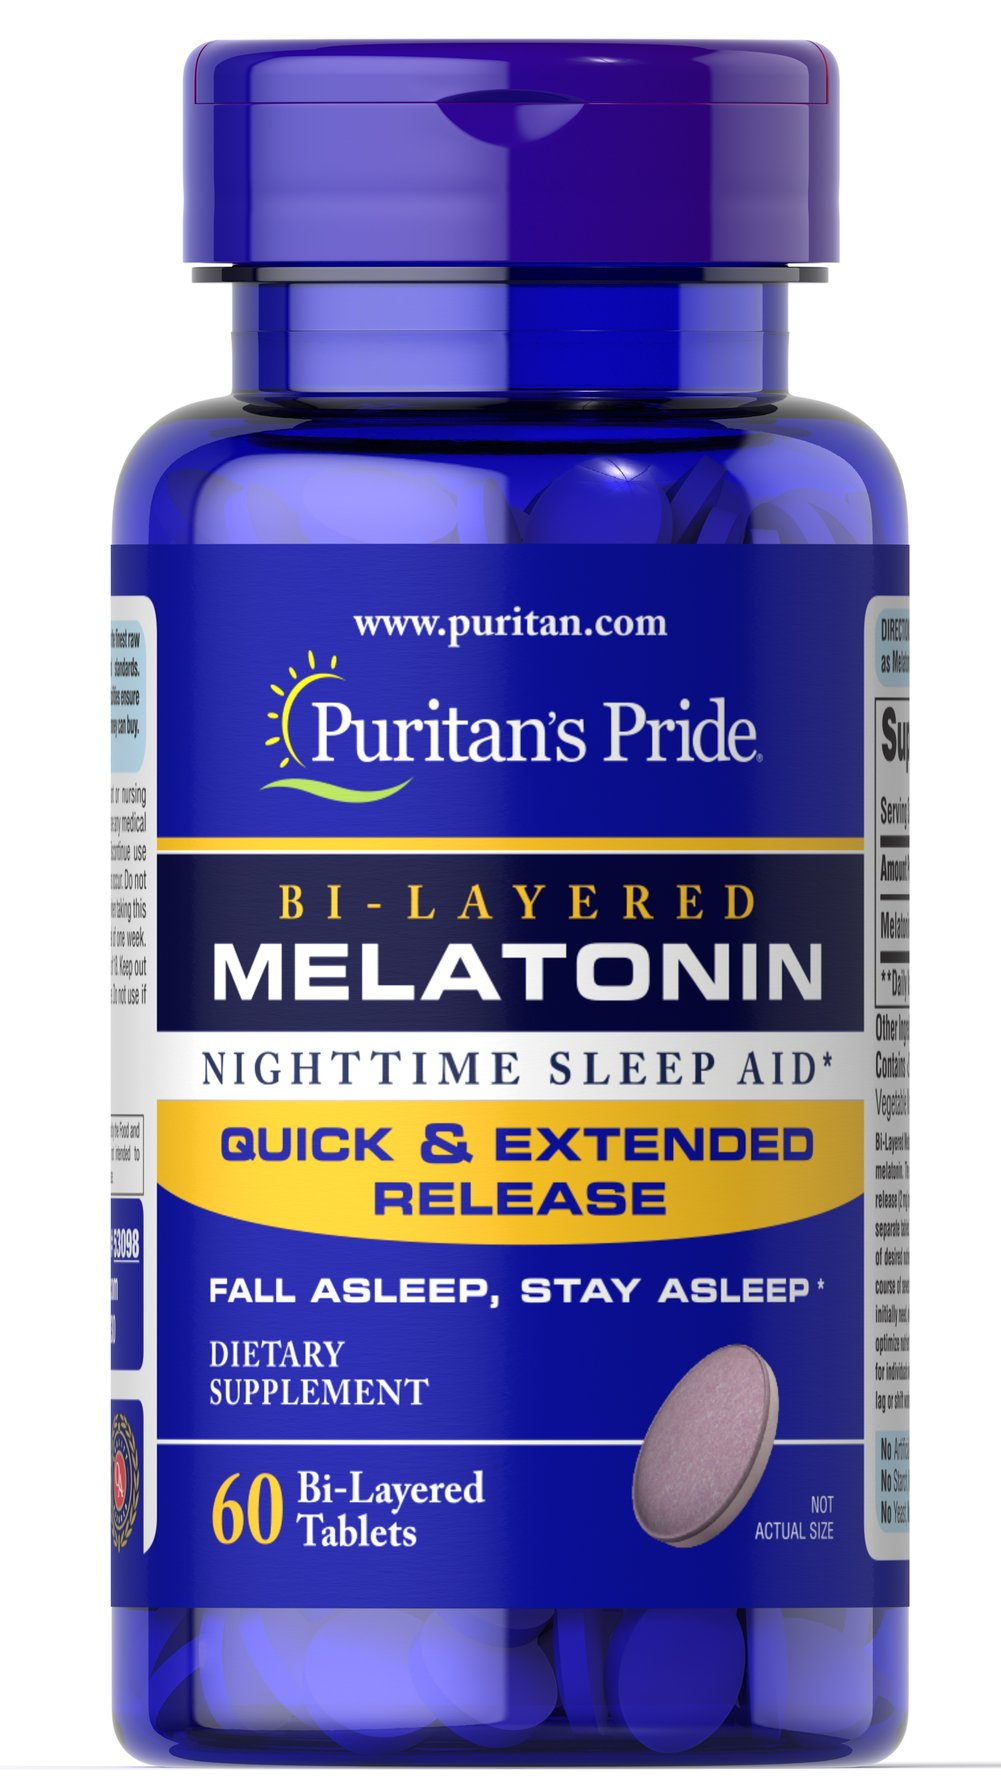 Bi-Layered Melatonin 5 mg Sometimes it's hard to unwind after a long day. That's when it's time  for Melatonin, a hormone naturally produced in the body that is closely  involved in the natural sleep cycle.** It's a terrific choice if you  experience occasional sleeplessness or jet lag, or if you want to  improve your quality of rest.**  Melatonin helps you fall asleep quickly  and stay asleep longer** 60 Tablets 5 mg $9.99